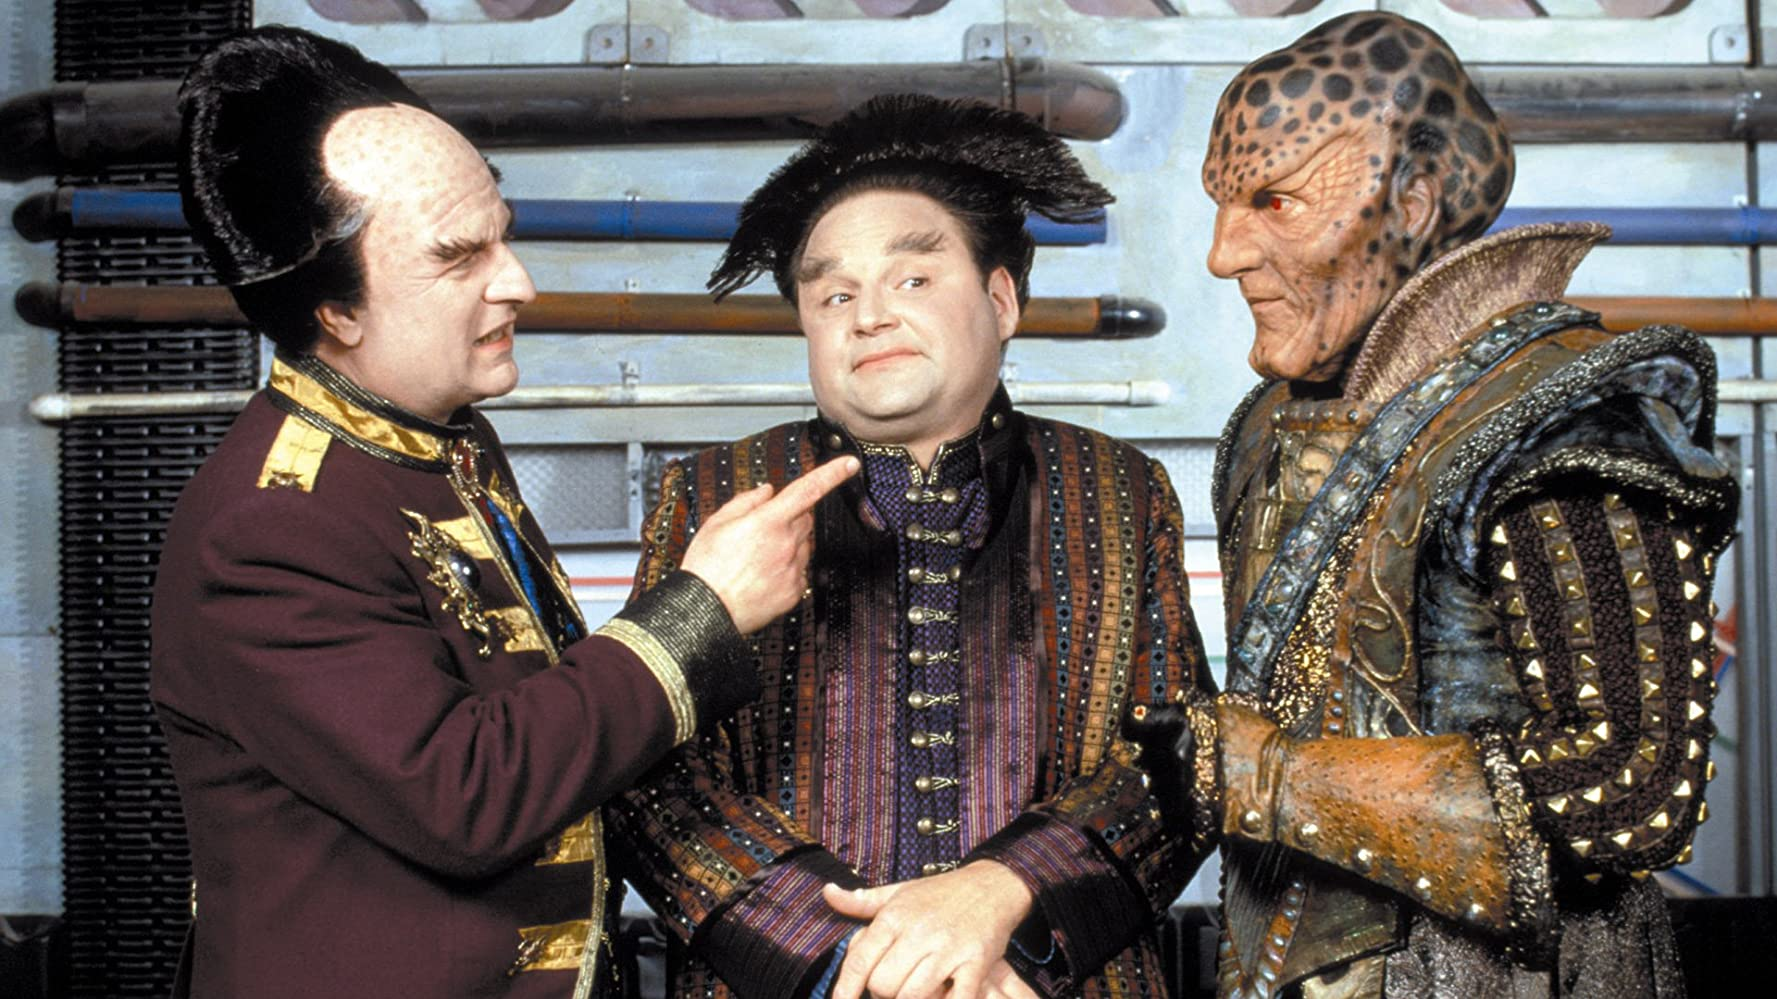 Stephen Furst Peter Jurasik and Andreas Katsulas in Babylon 5 1994